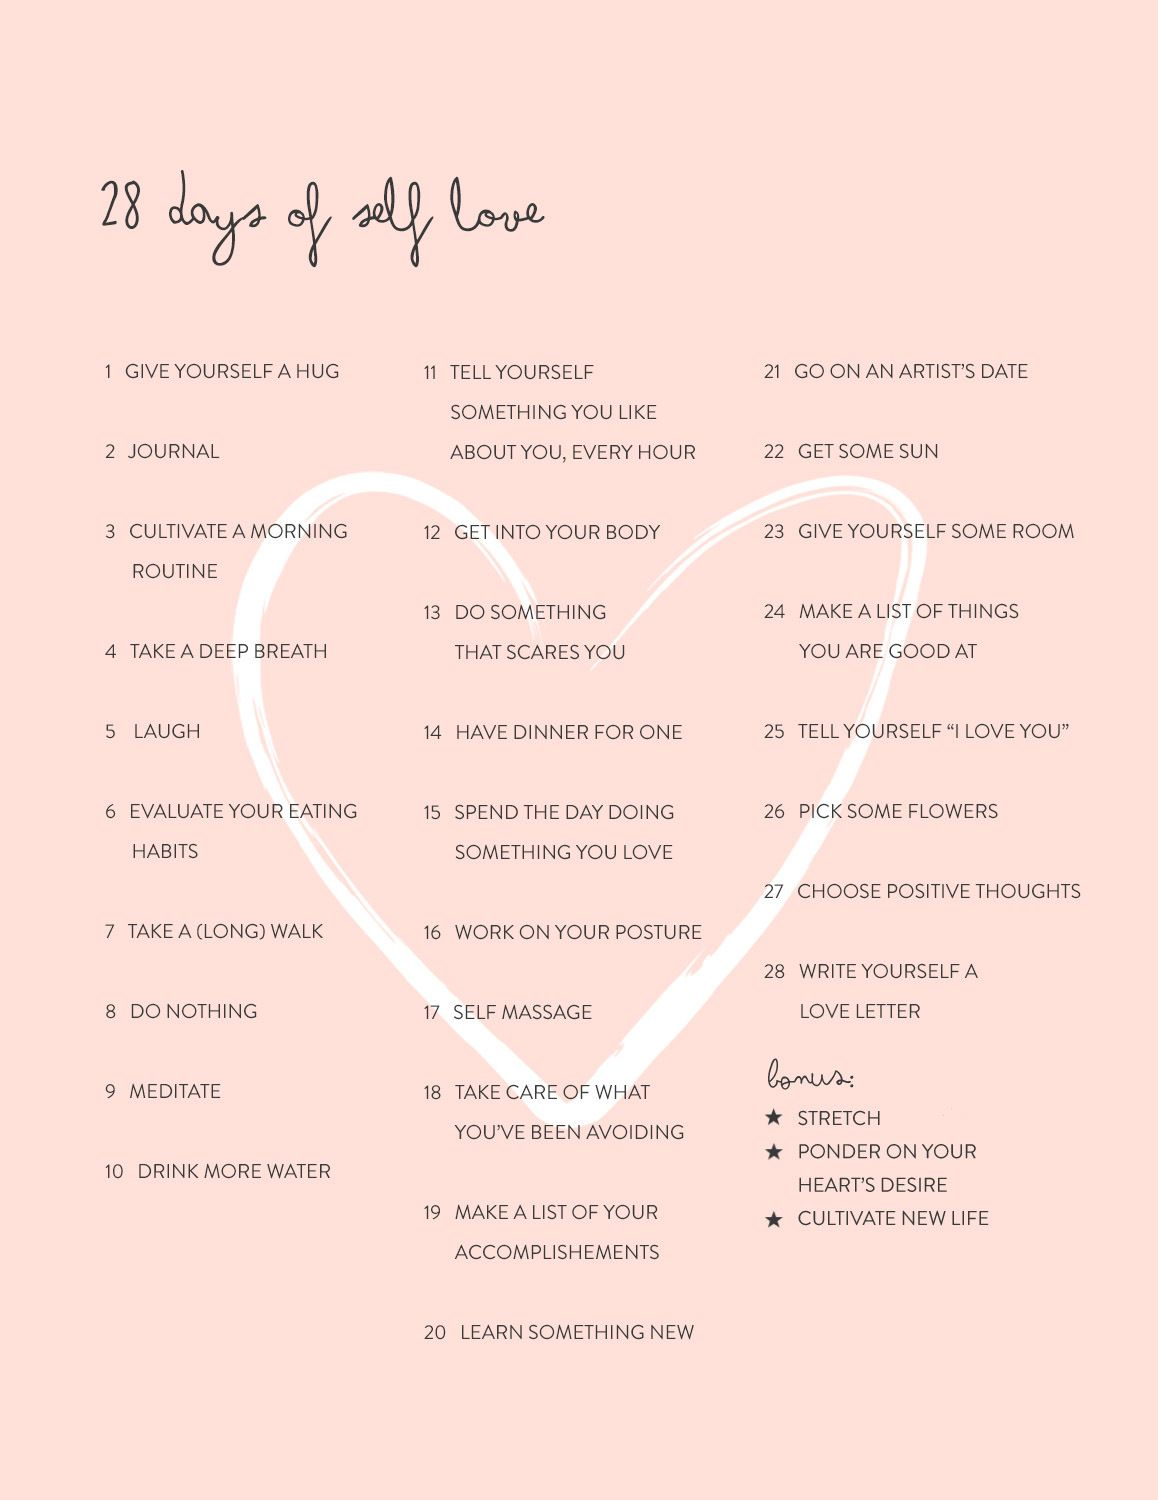 days of self love challenge renaissante com renaissante challenges